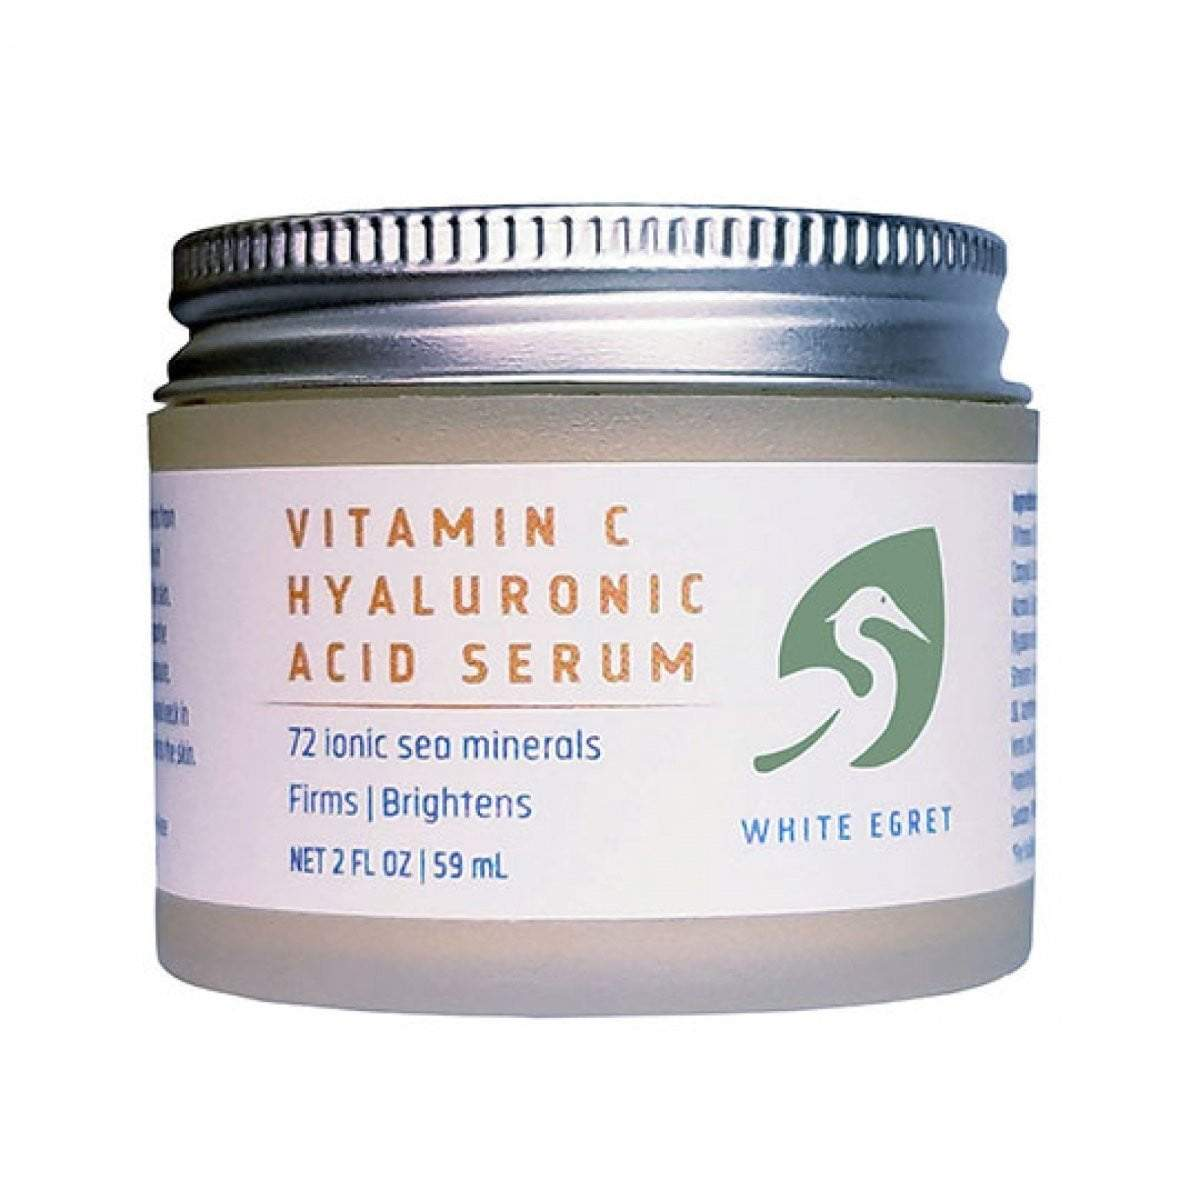 White Egret Hyaluronic Acid with Vitamin C